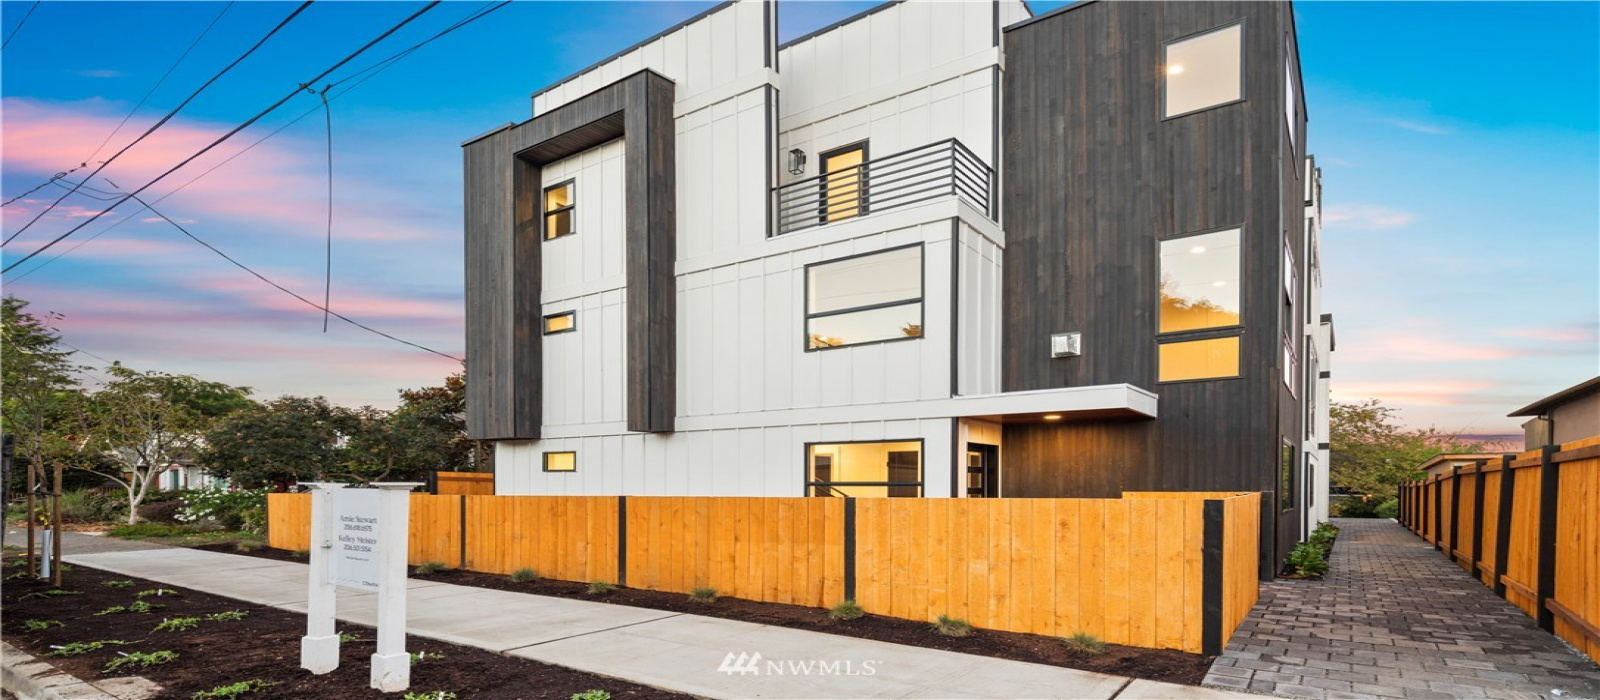 4556 34th Avenue, Seattle, Washington 98118, 3 Bedrooms Bedrooms, ,2 BathroomsBathrooms,Residential,For Sale,34th,NWM1845284